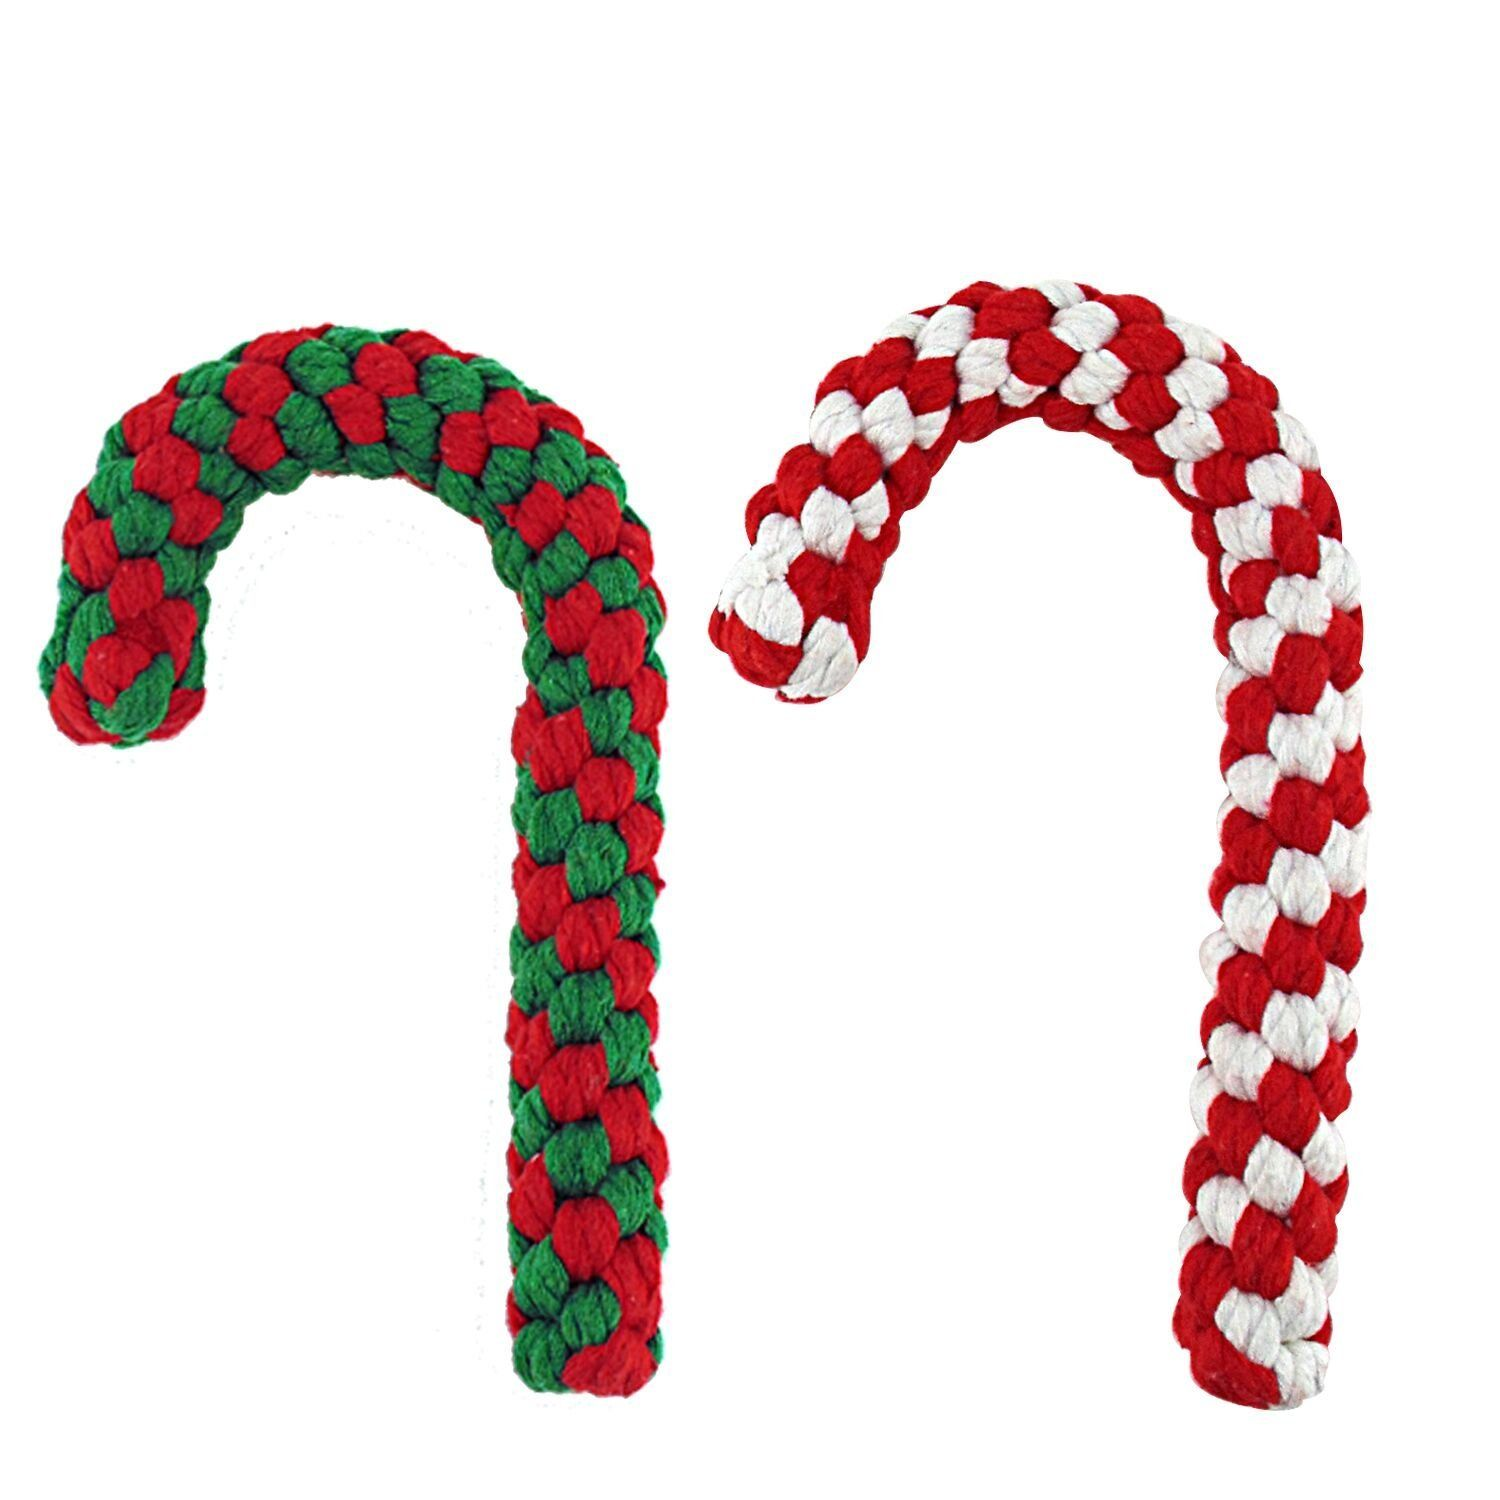 Candy Cane Rope Toy Puppy Chew Dog Toys Interactive And Chewing Cotton Rope Toys For Christmas Gift And Christmas Deco Dog Toys Puppy Chew Toys Puppy Chewing